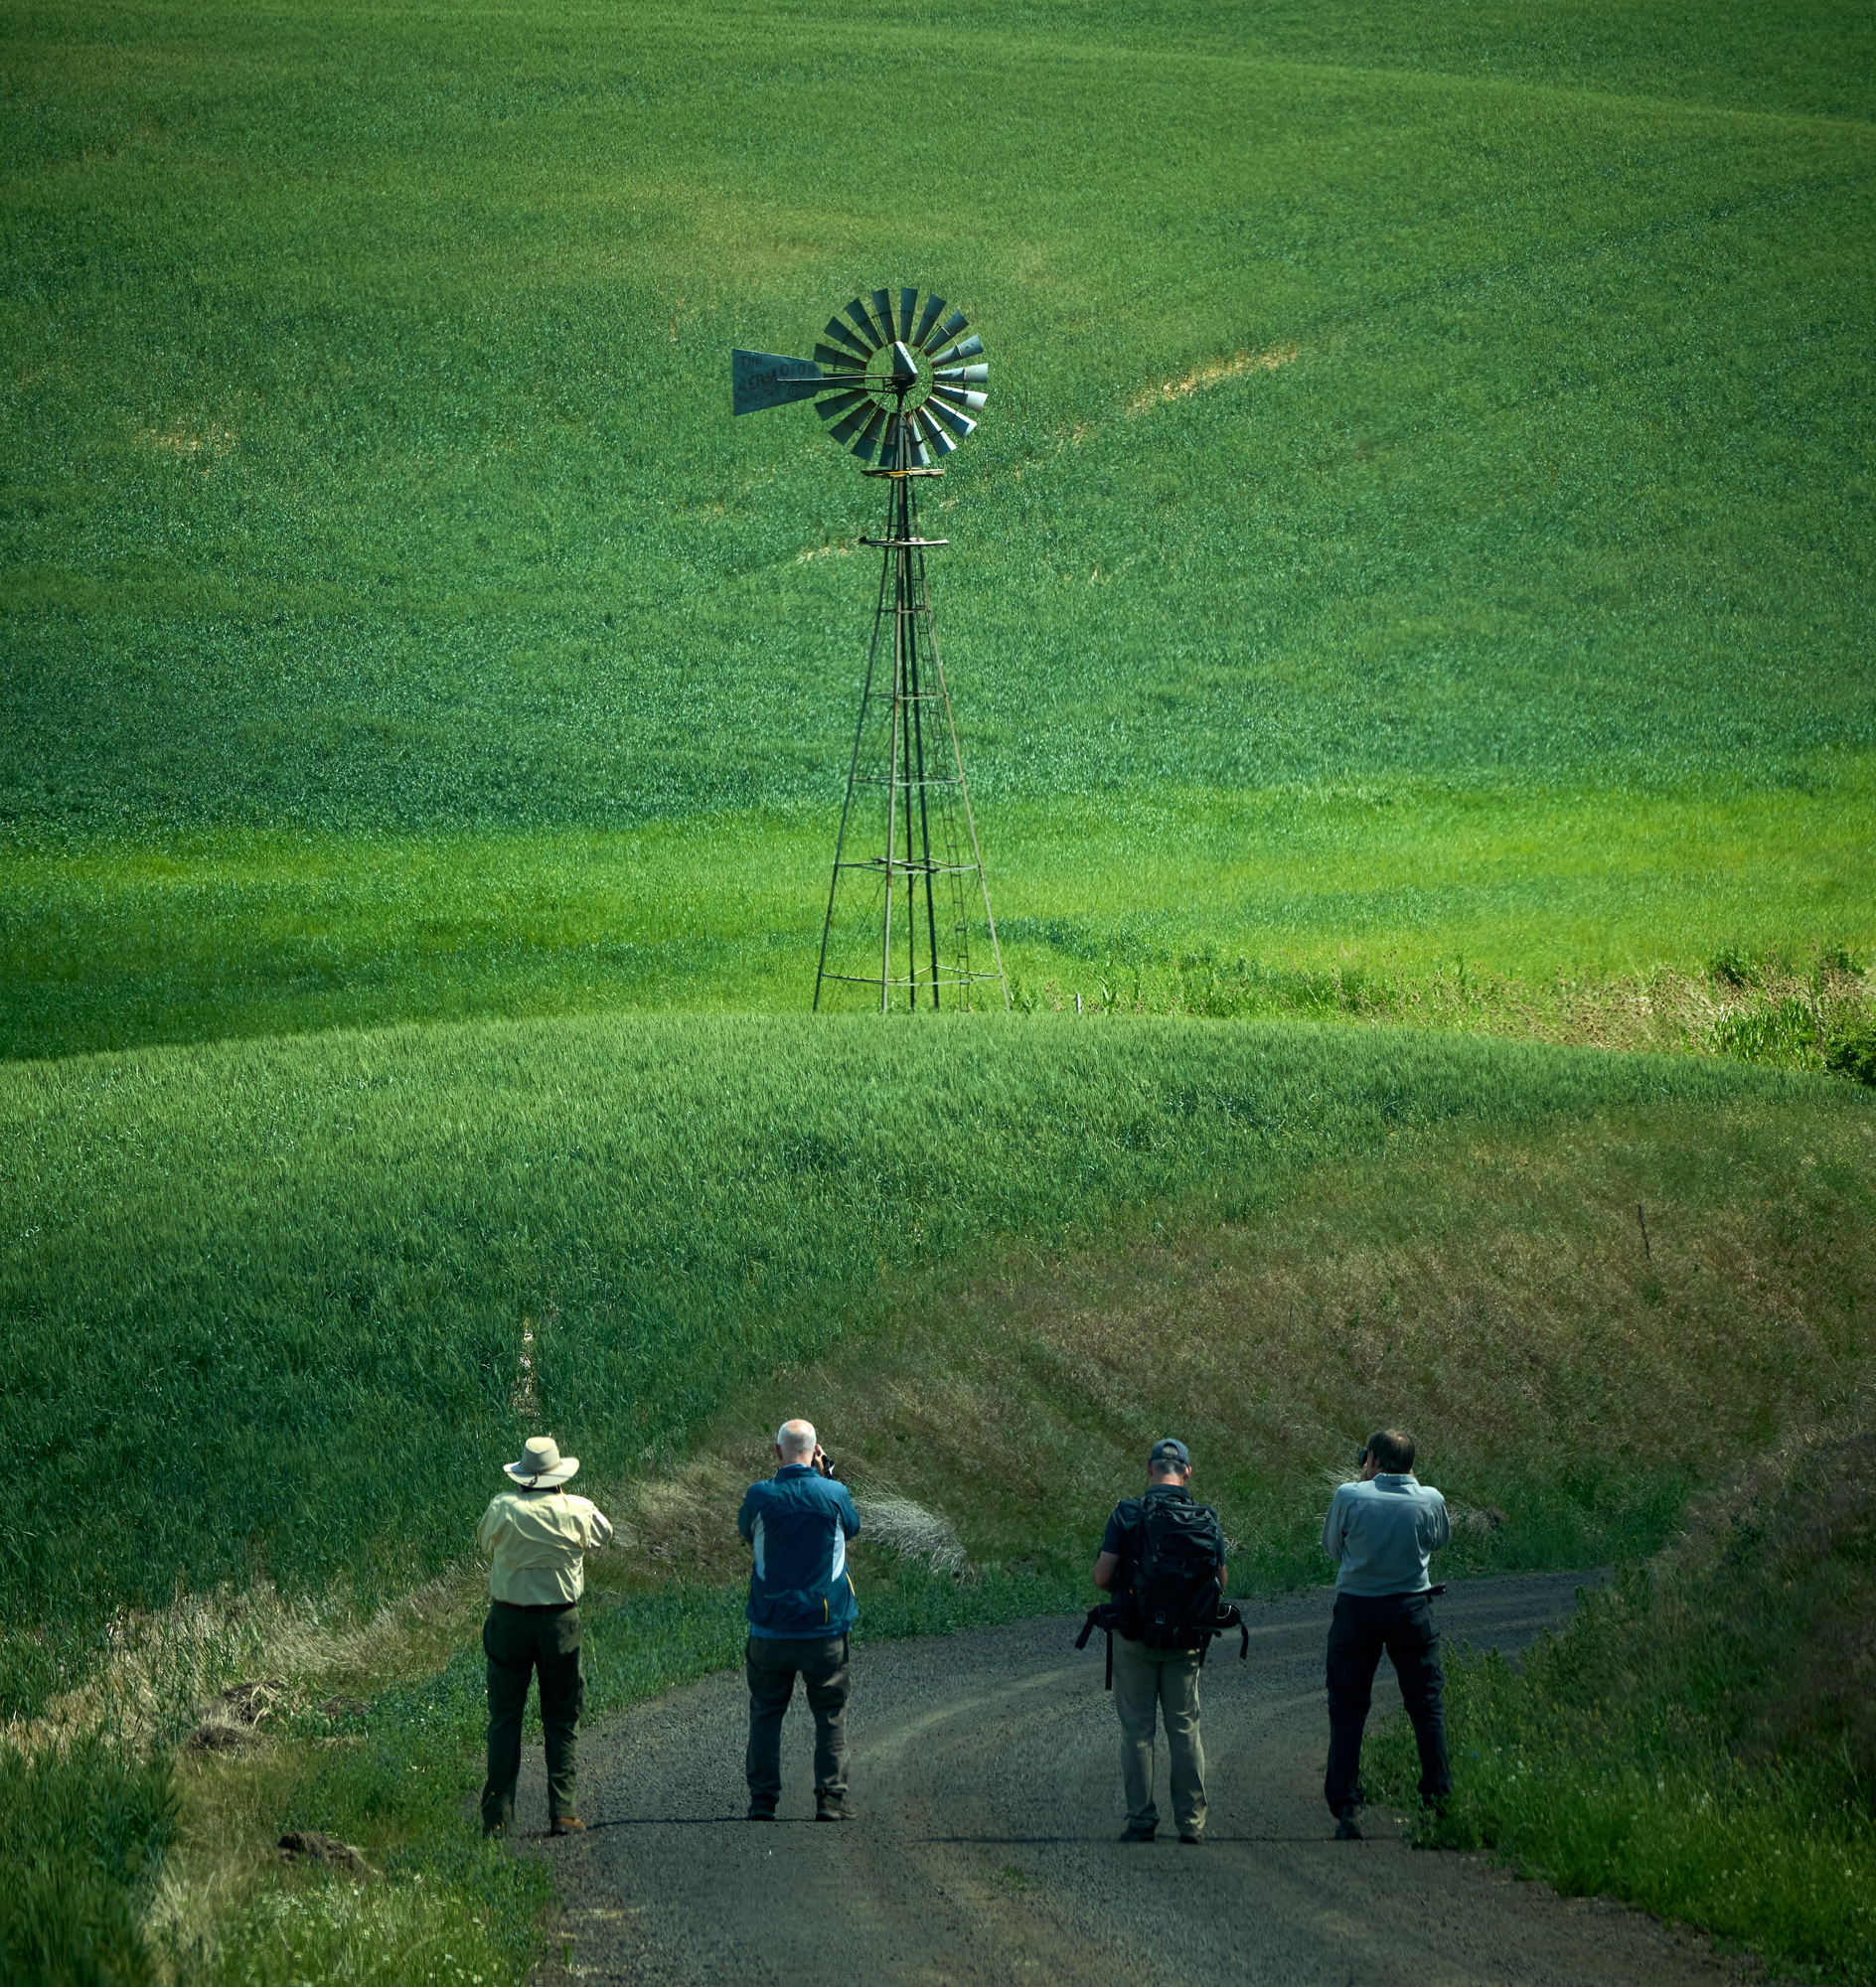 The attendees shooting a lone windmill